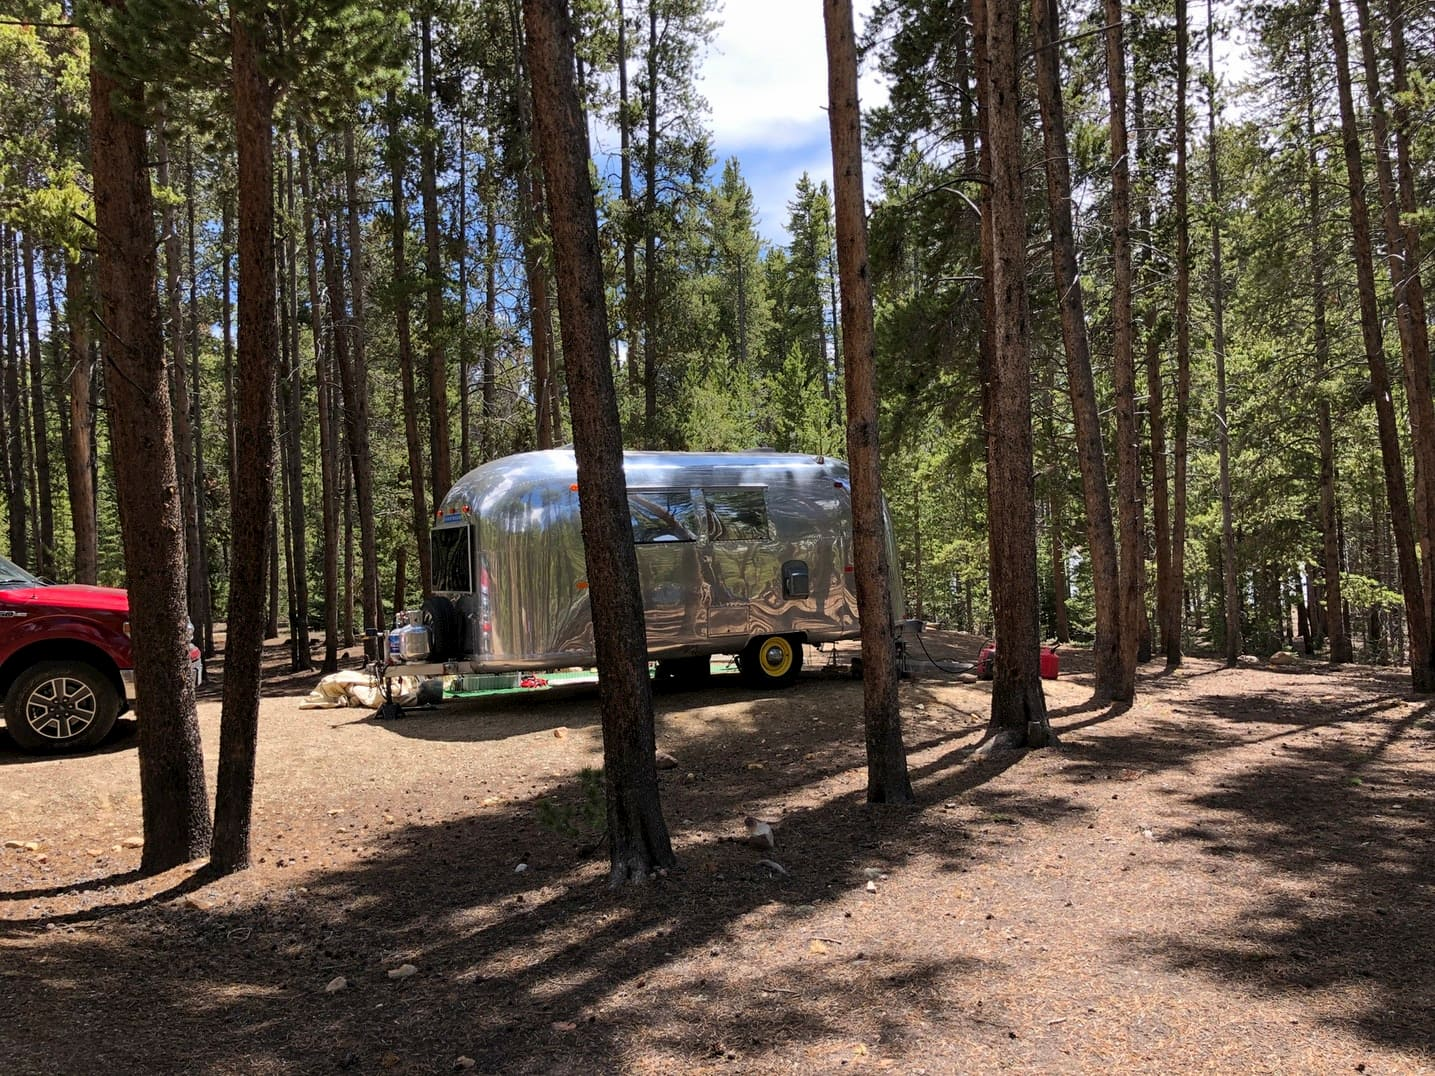 Airstream trailer parked in the woods.